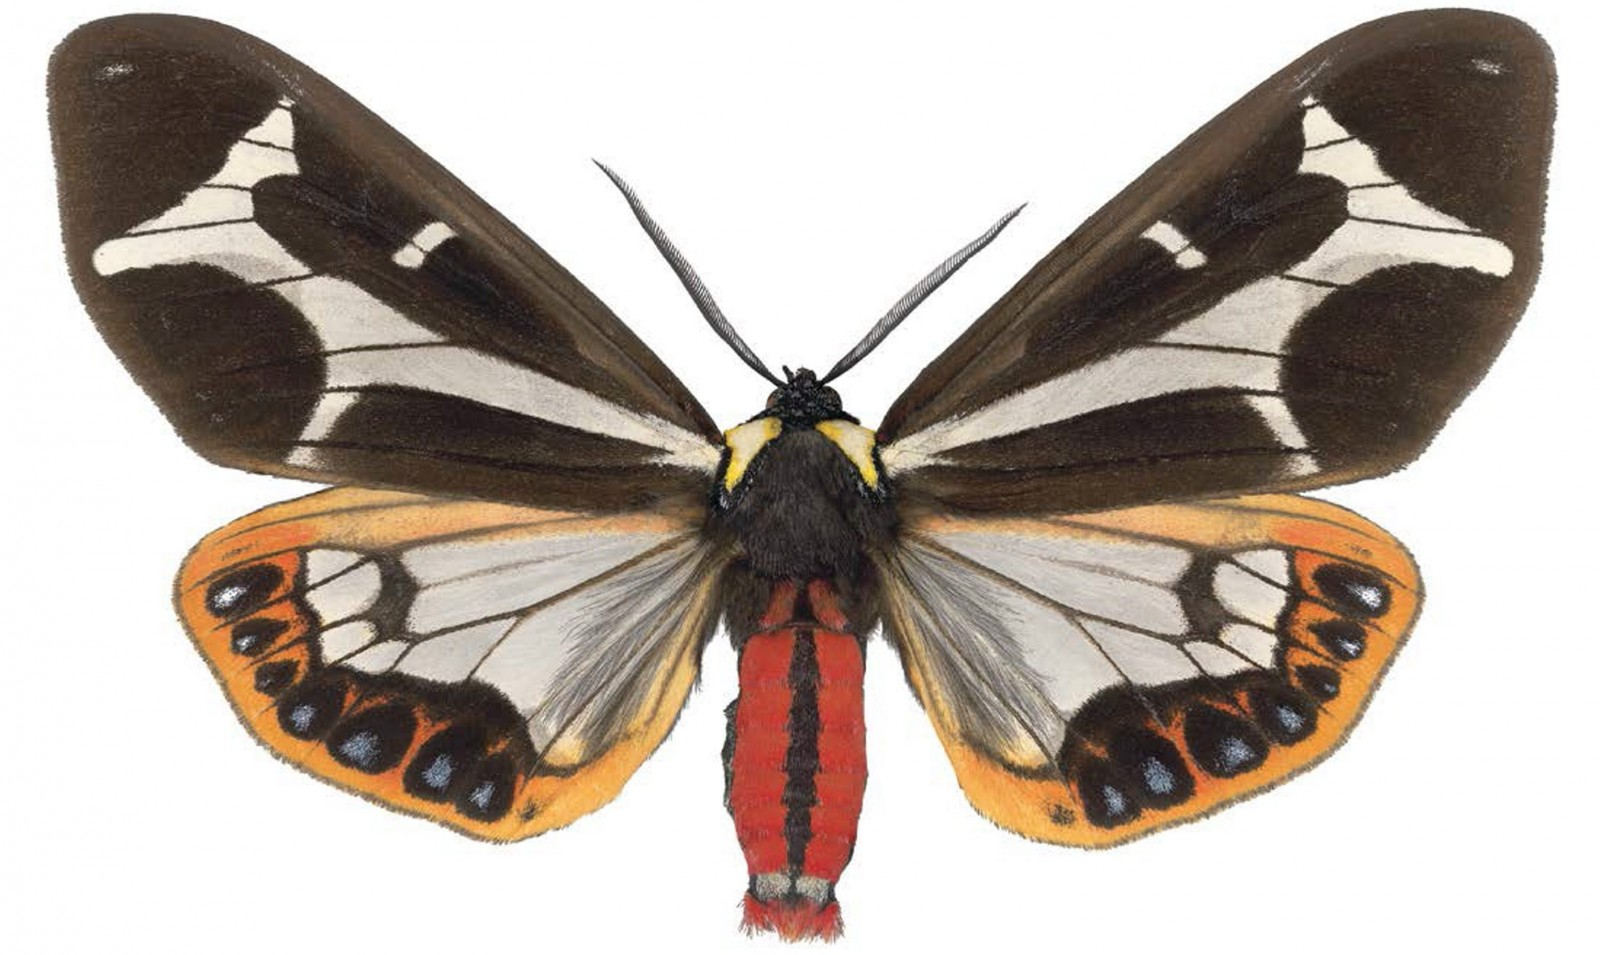 """Joseph Scheer's 'Dysschema mariamne ma,"""" a high-resolution scan of a moth, is on view in Indigo Art's exhibition """"Mothing: Life Beyond the Edge of Awareness."""""""